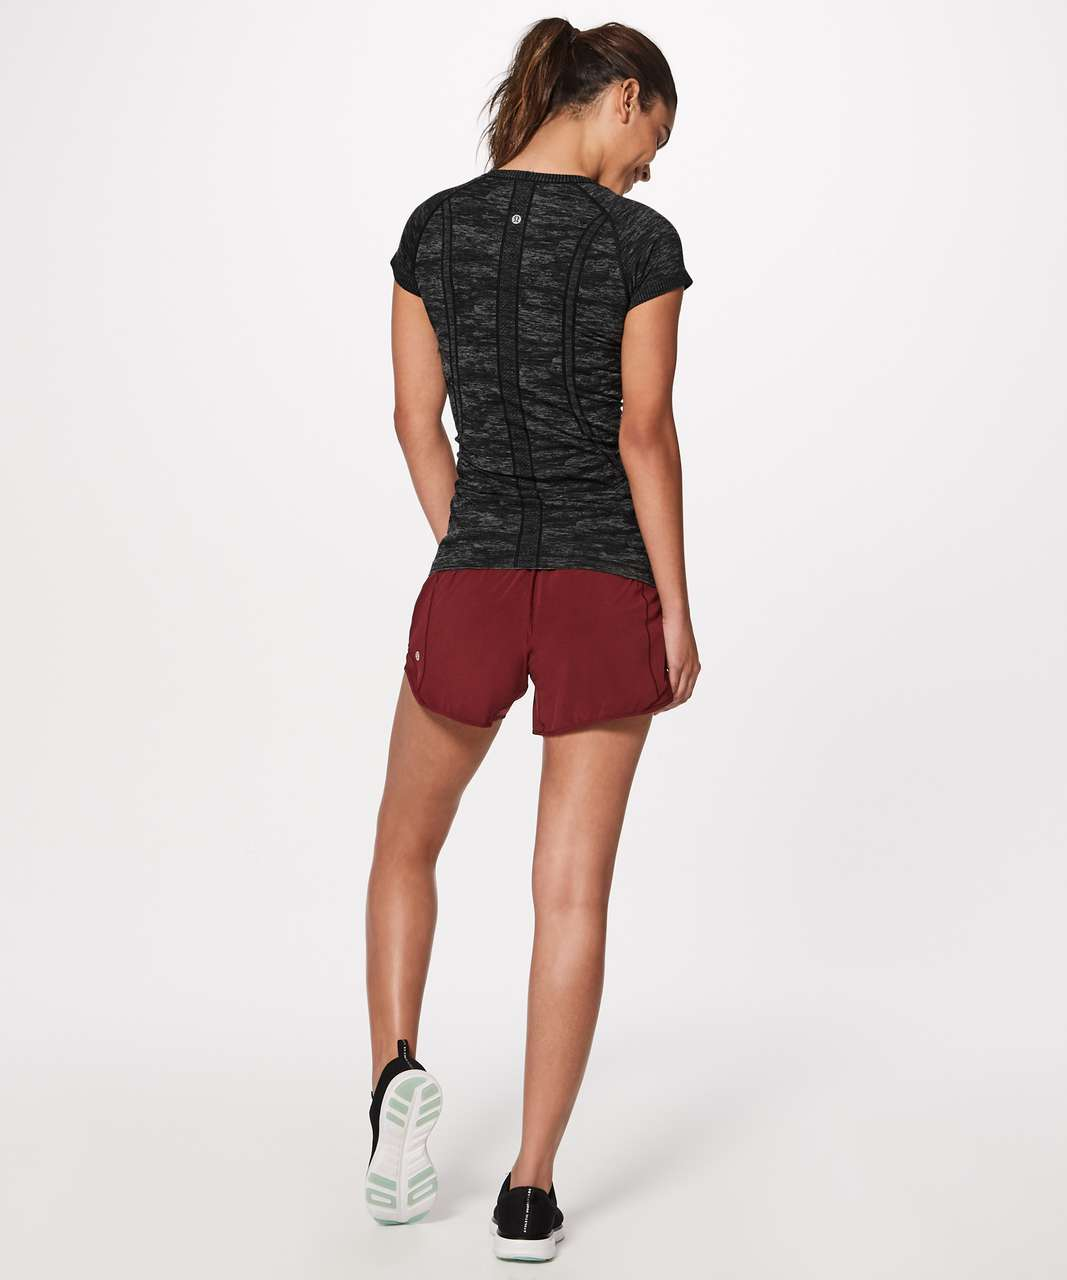 Lululemon Swiftly Tech Short Sleeve Crew - Black / White / Black (Camo)